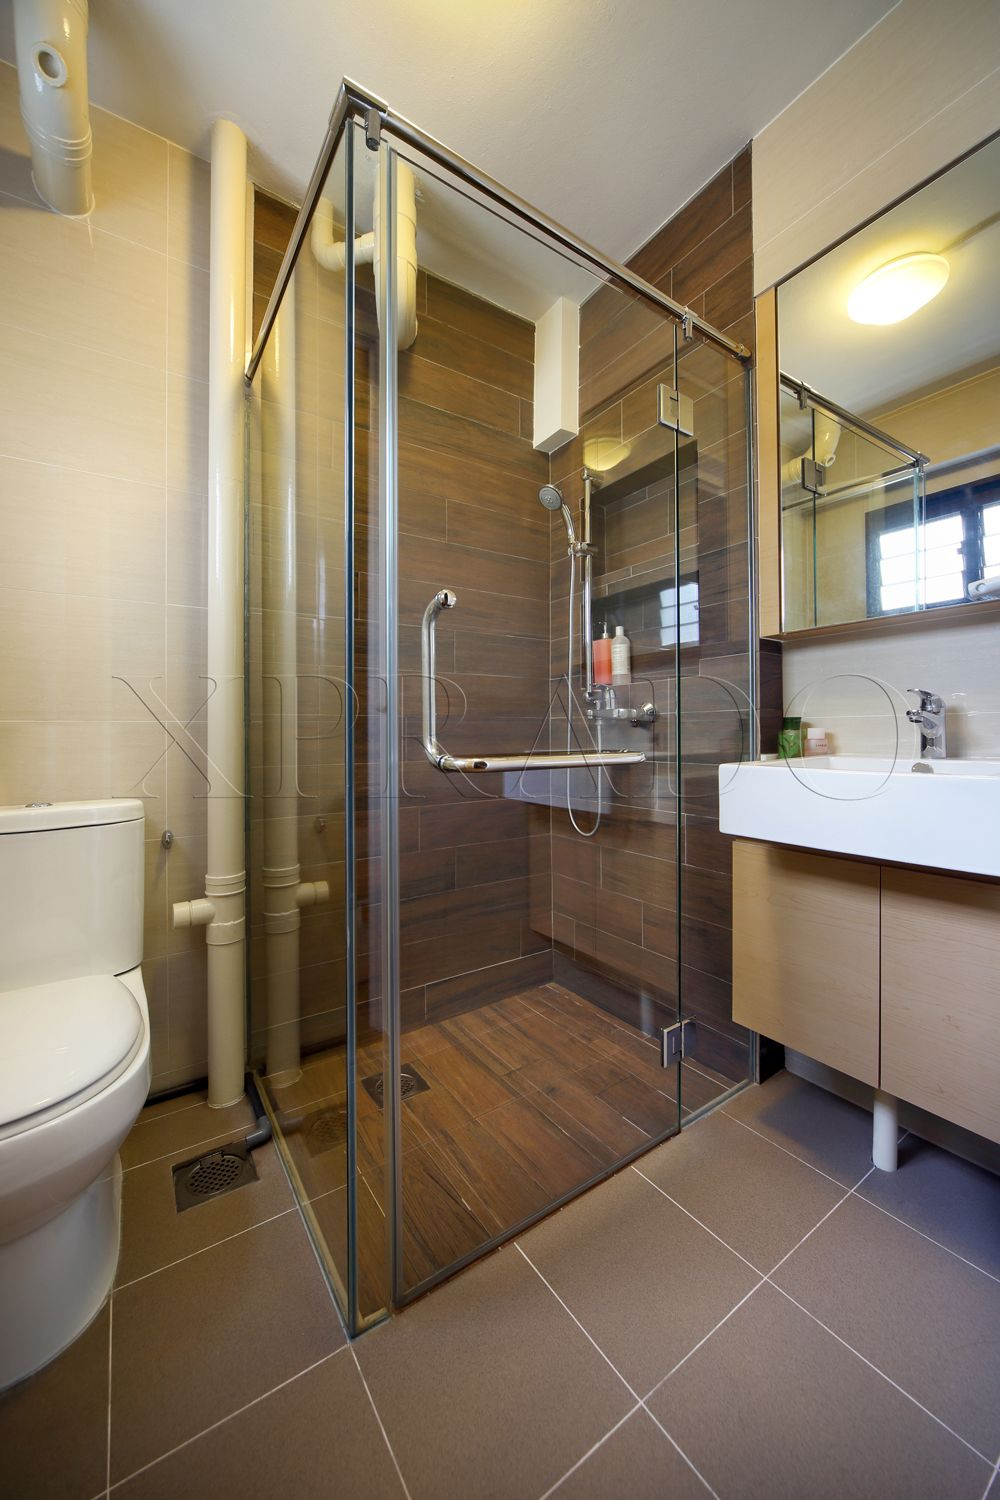 A Bathroom And A Toilet In An Average Hdb Flat Interior Design Toilet Small Space Bathroom Toilet Design